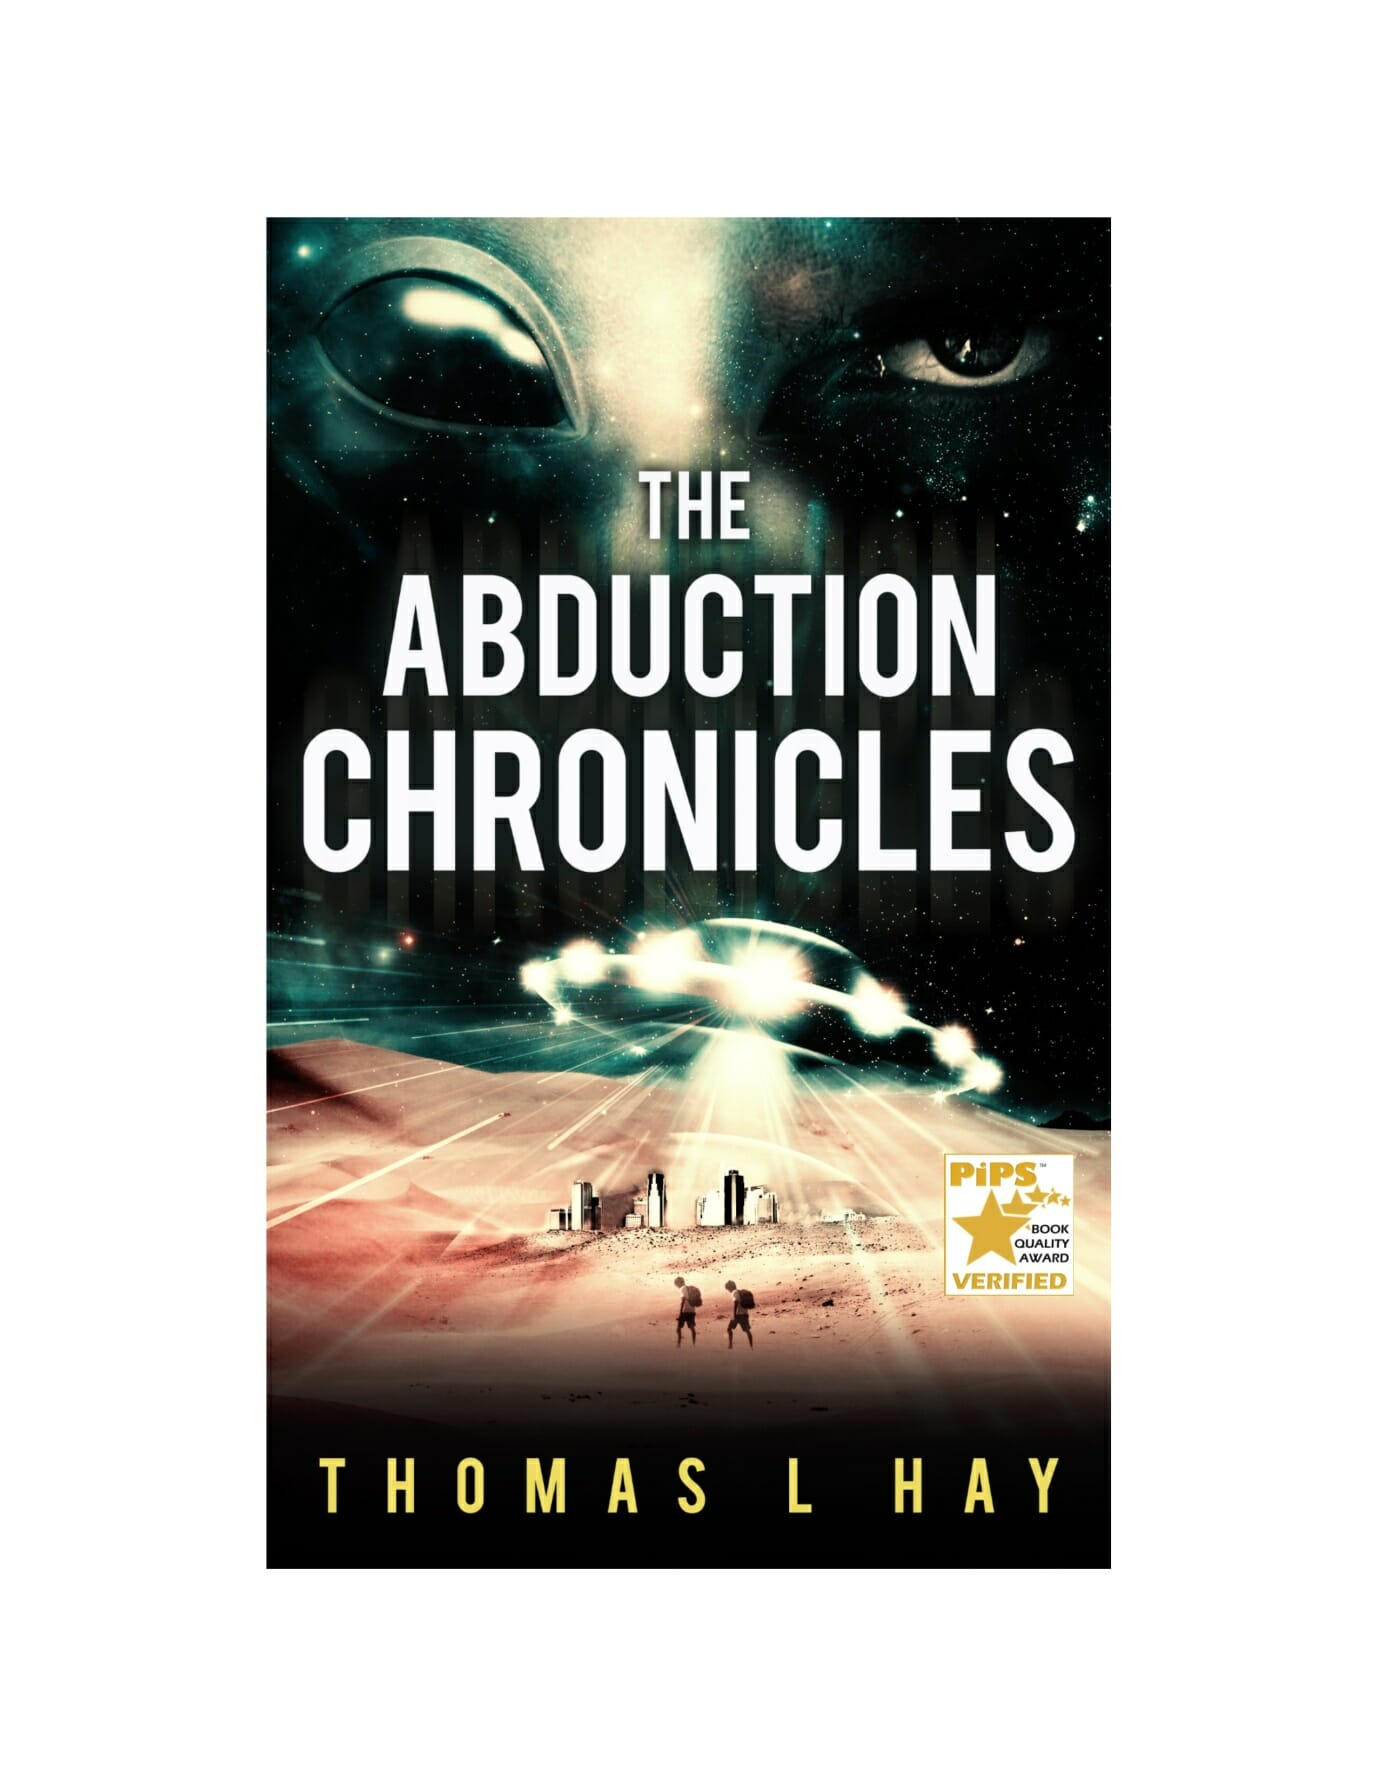 The Abduction Chronicles Image